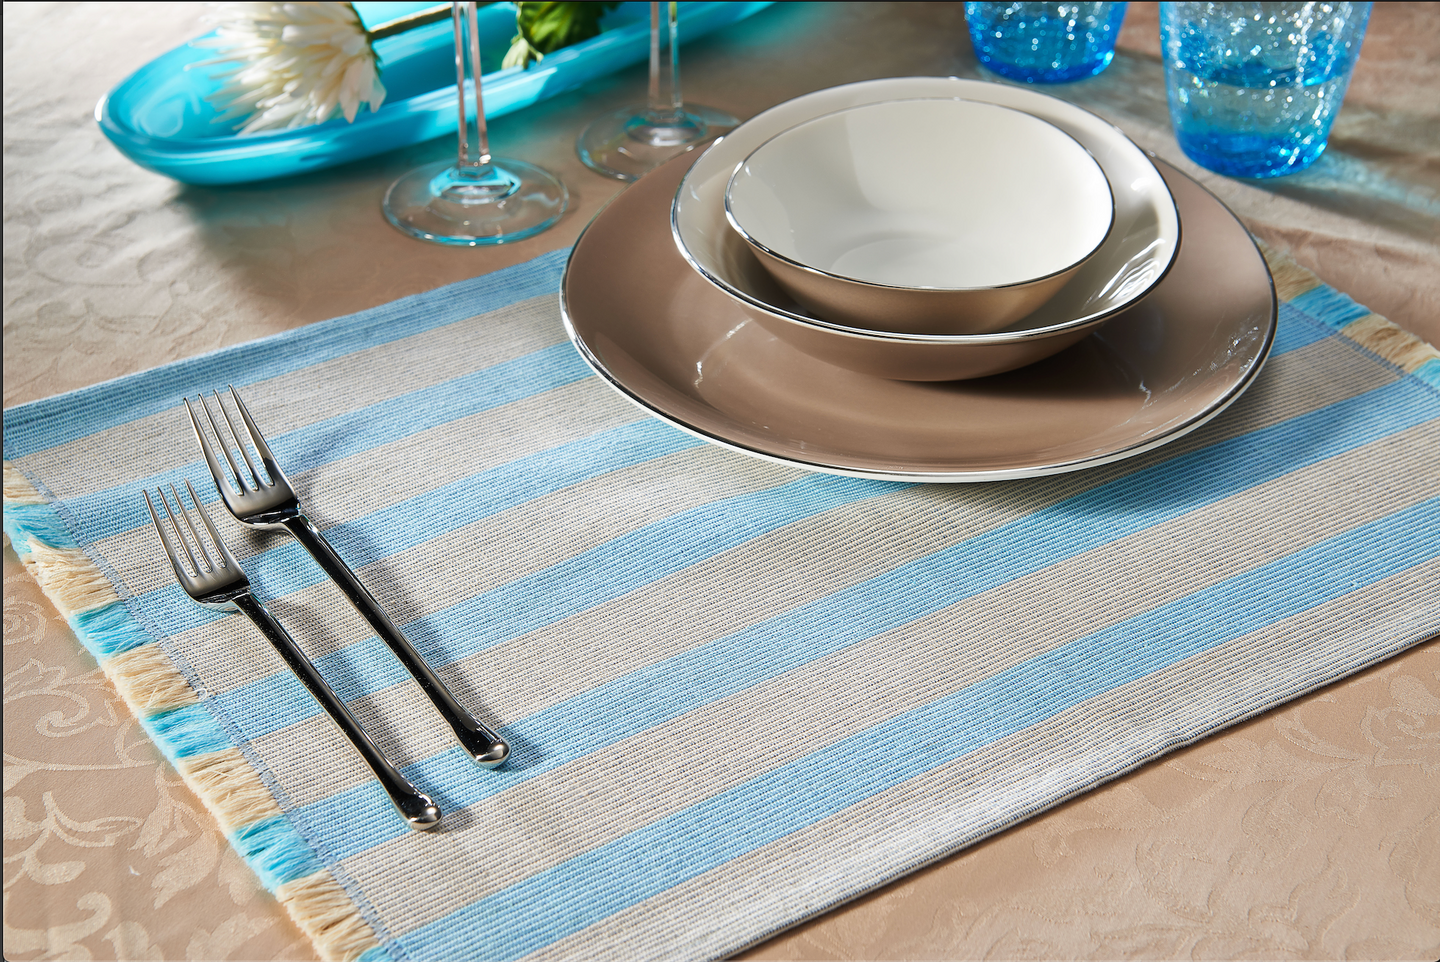 Pair of Beige & Baby Blue Striped Placemats